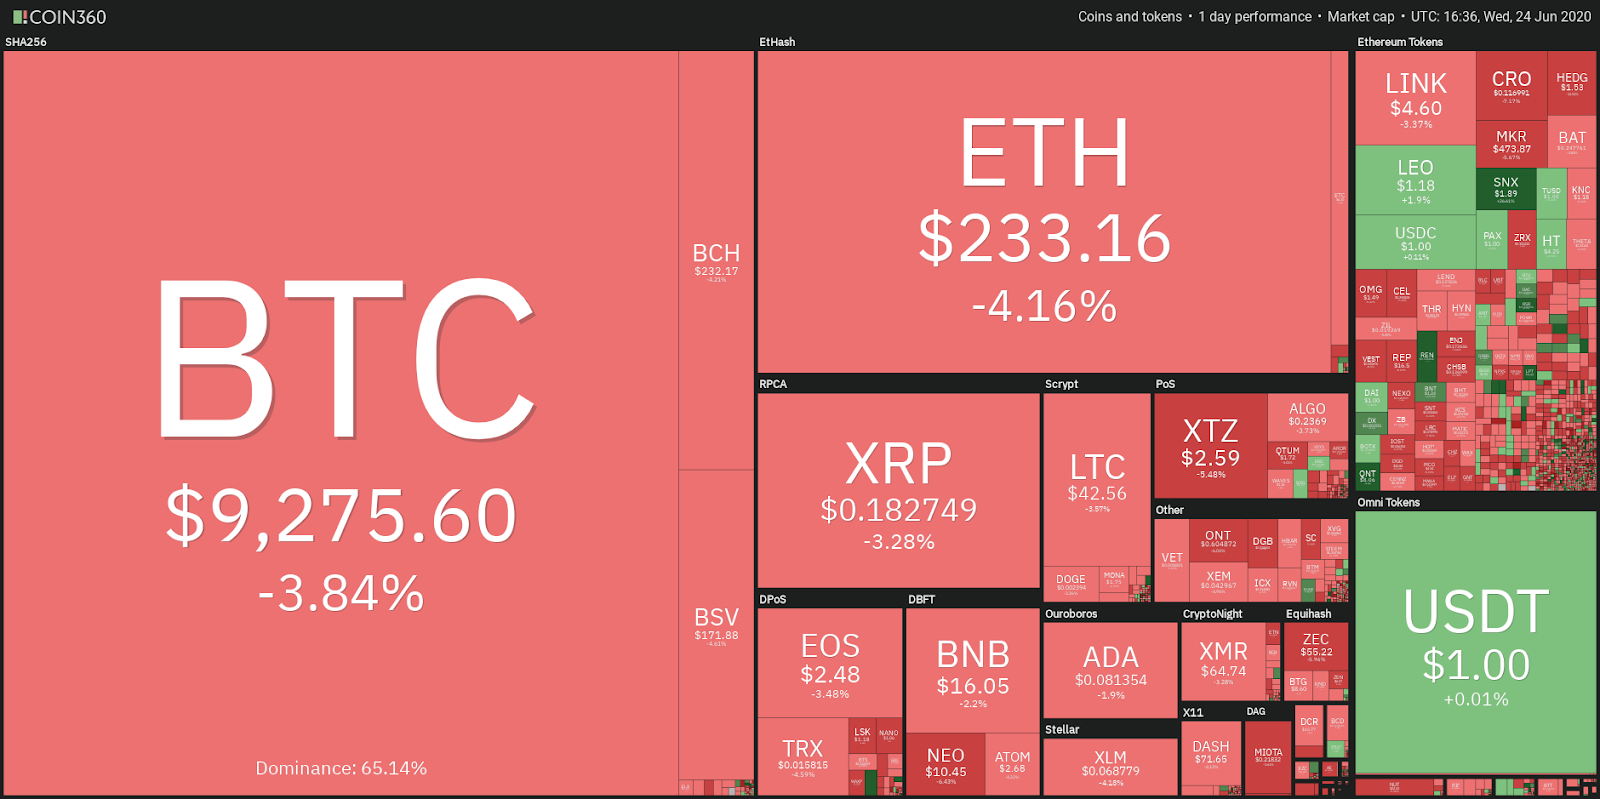 Daily cryptocurrency market performance